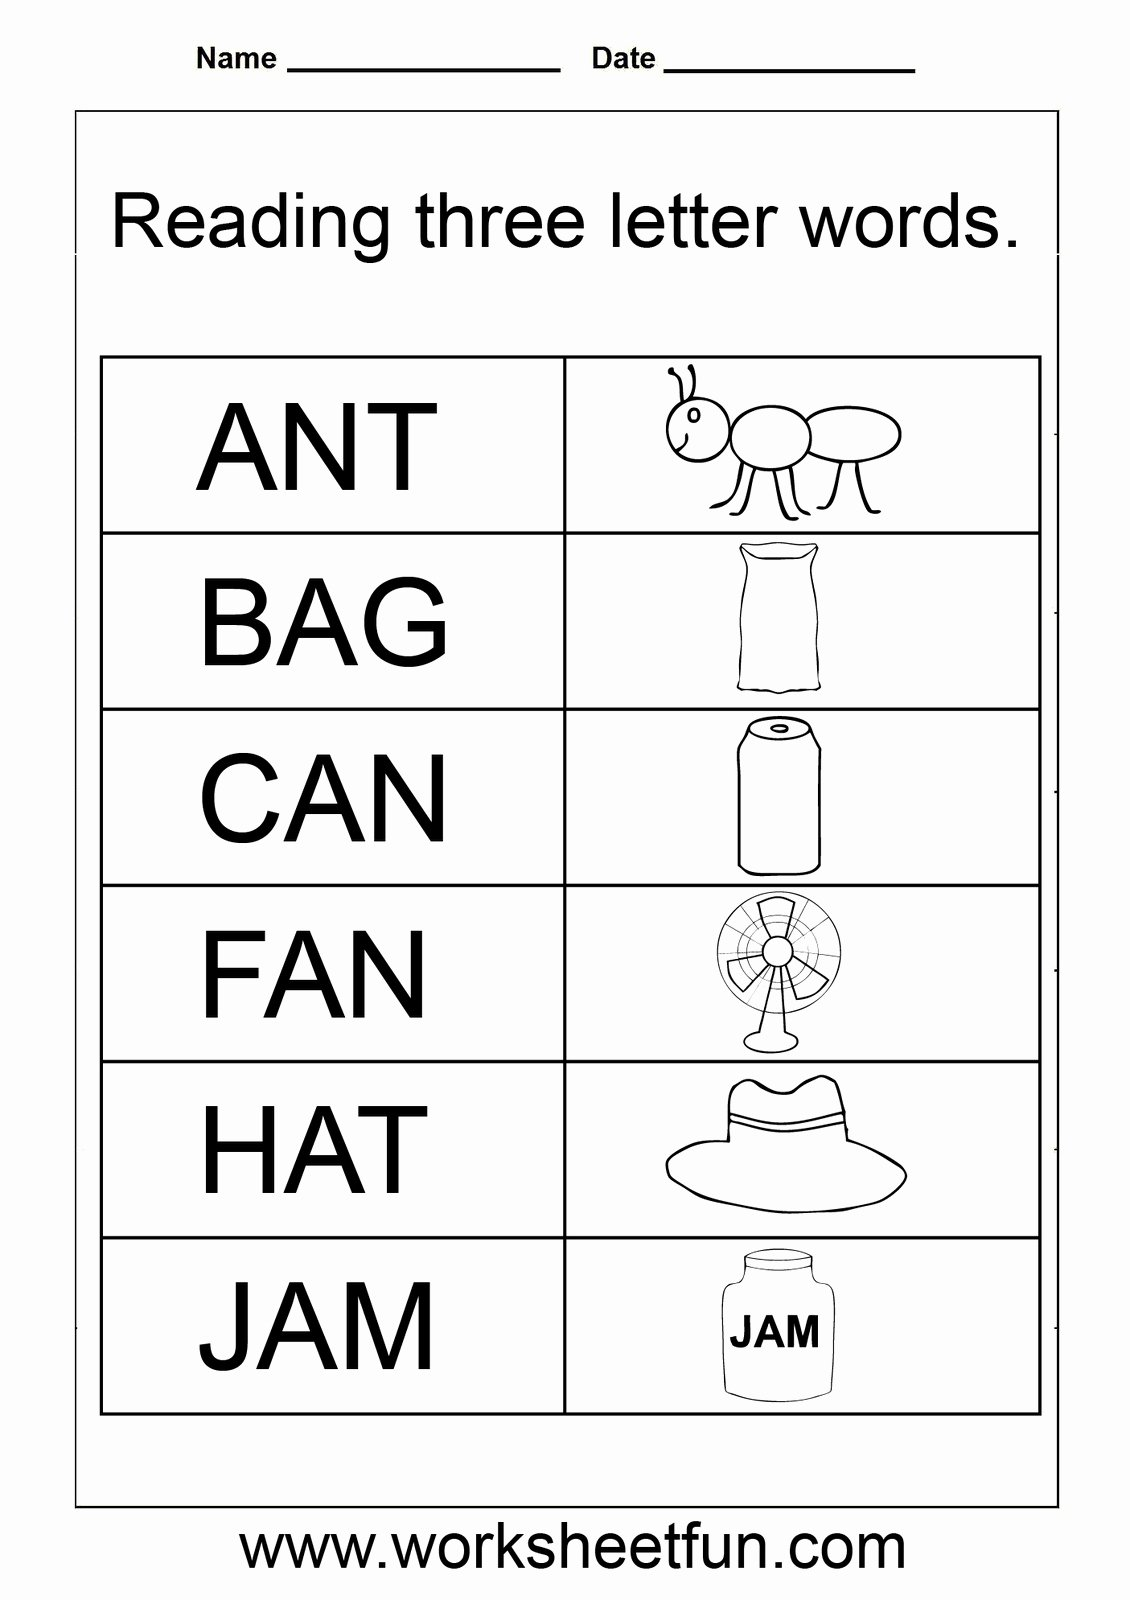 Three Letter Words Worksheets for Preschoolers top 3 Letter Words Worksheets for Kindergarten